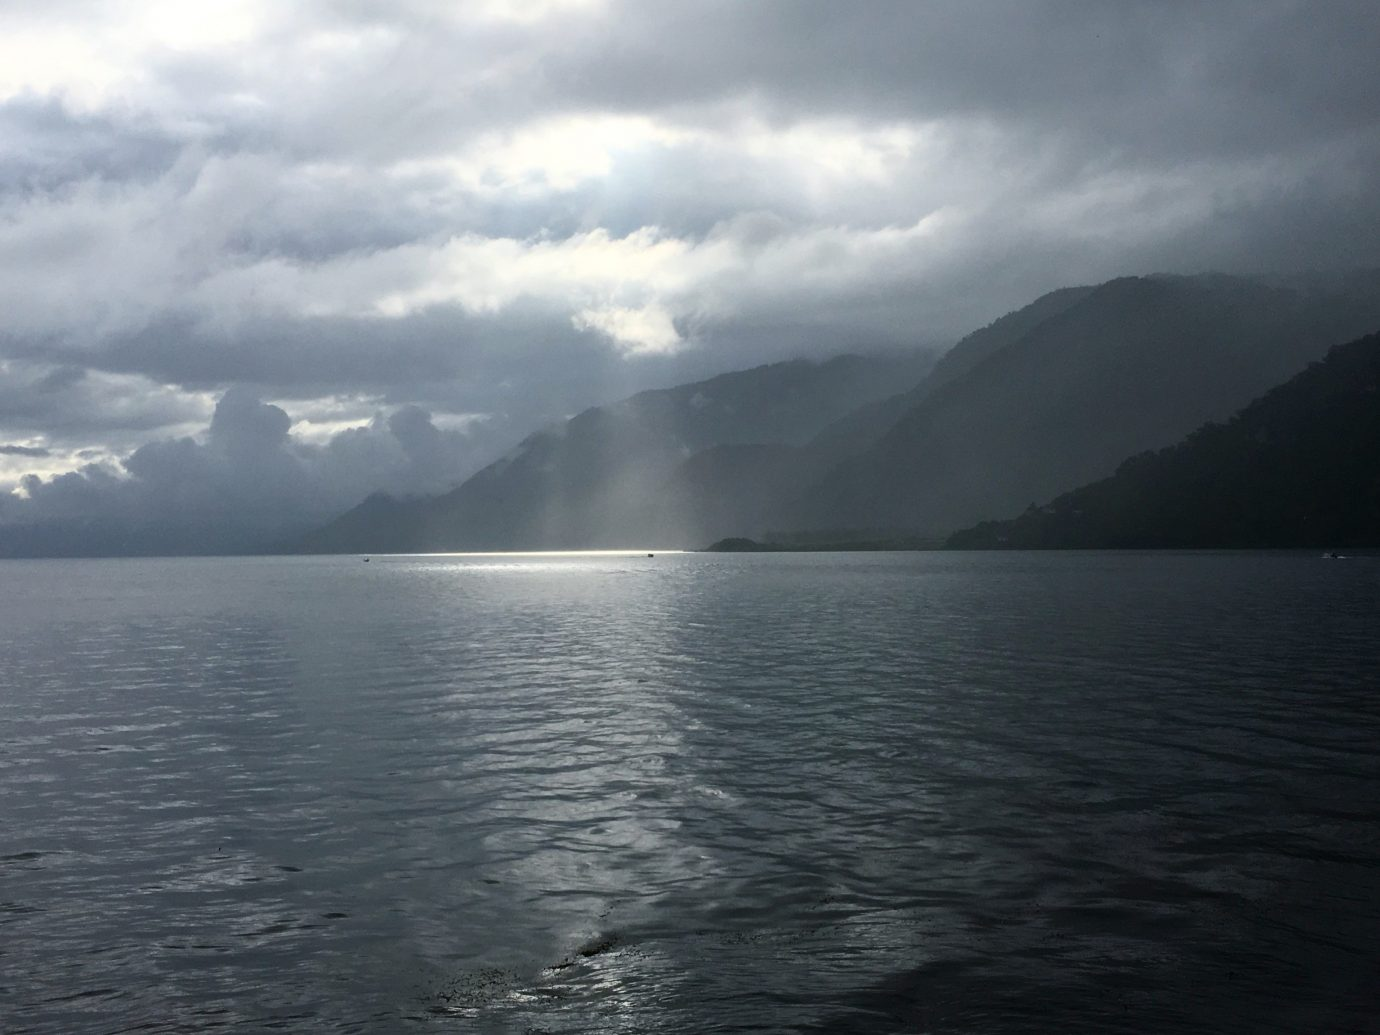 Trip Ideas water sky outdoor highland Nature Boat atmospheric phenomenon Lake loch body of water cloud horizon Sea weather fjord cloudy mountain clouds reservoir bay glacial landform promontory distance shore day